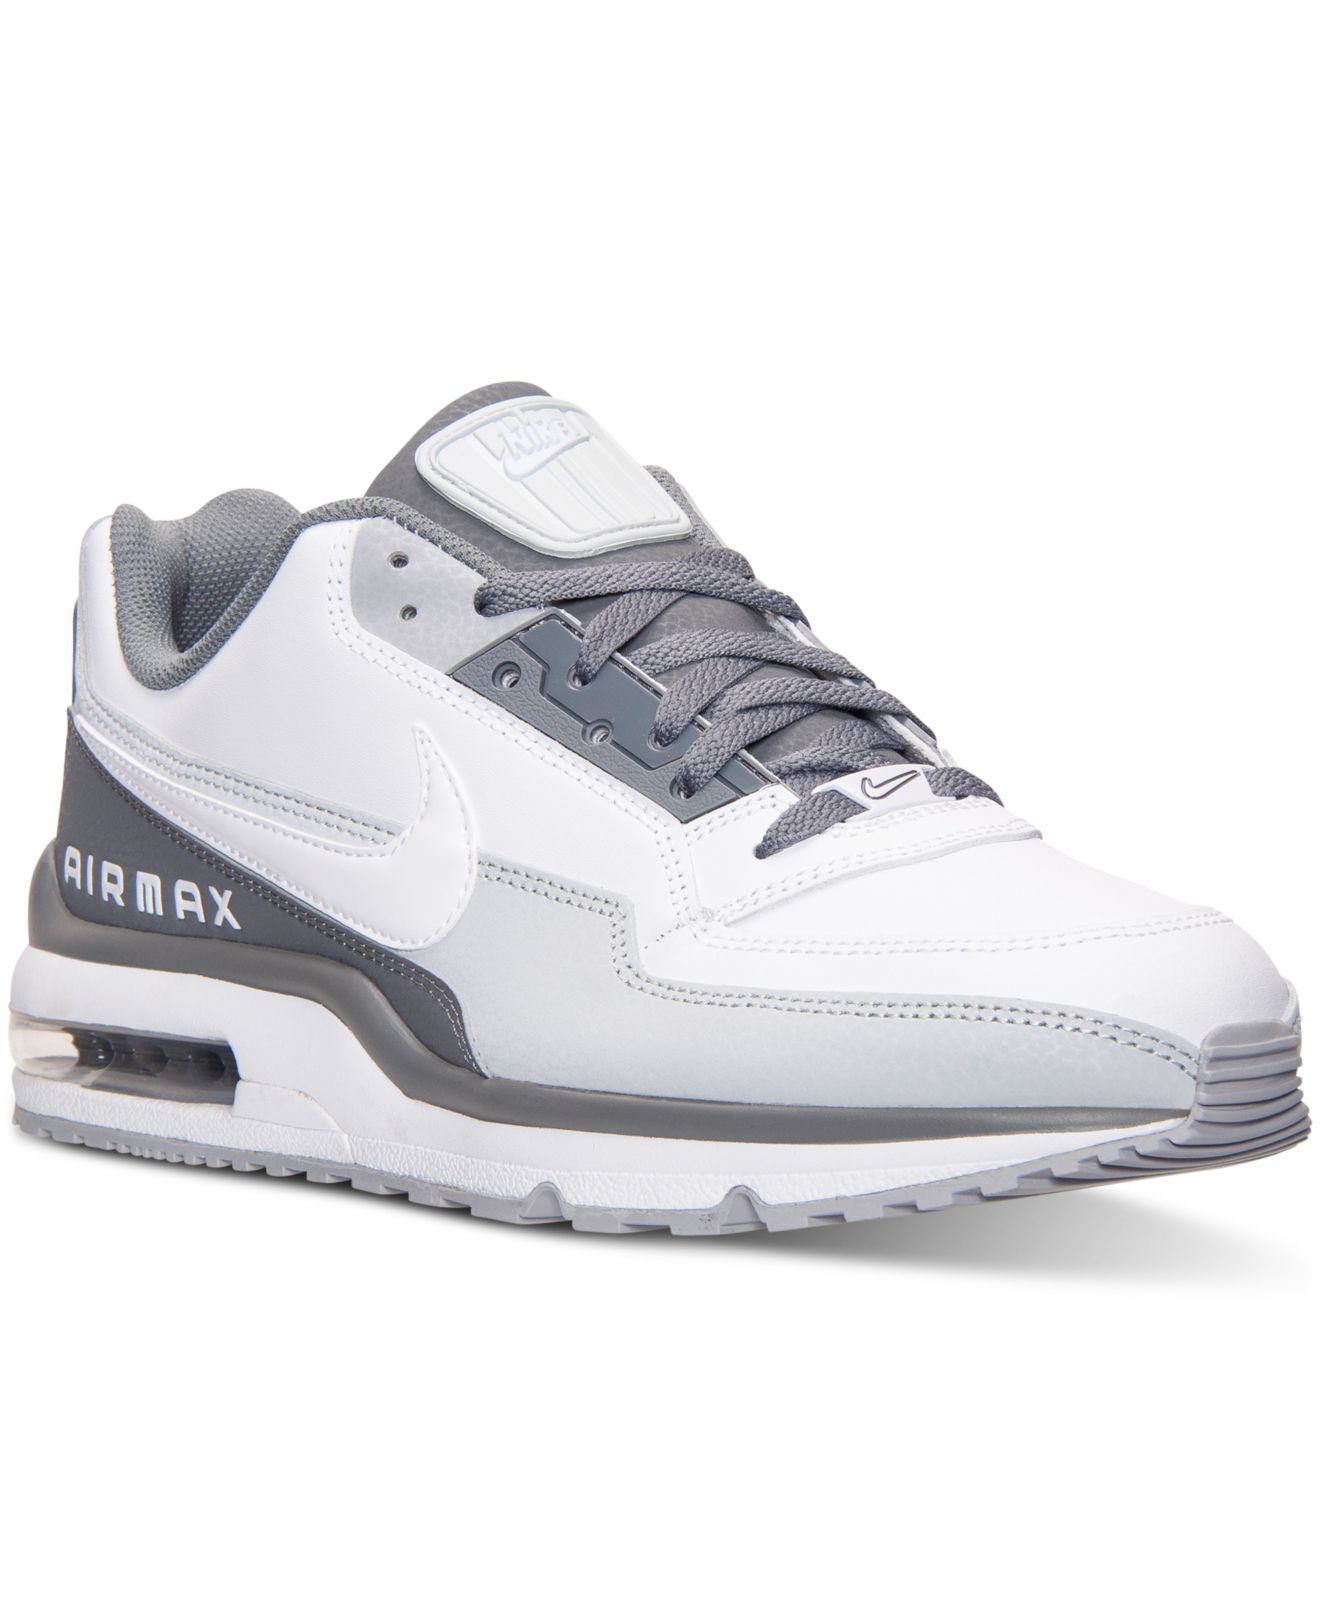 Lyst - Nike Men s Air Max Ltd 3 Running Sneakers From Finish Line in ... 40679345c